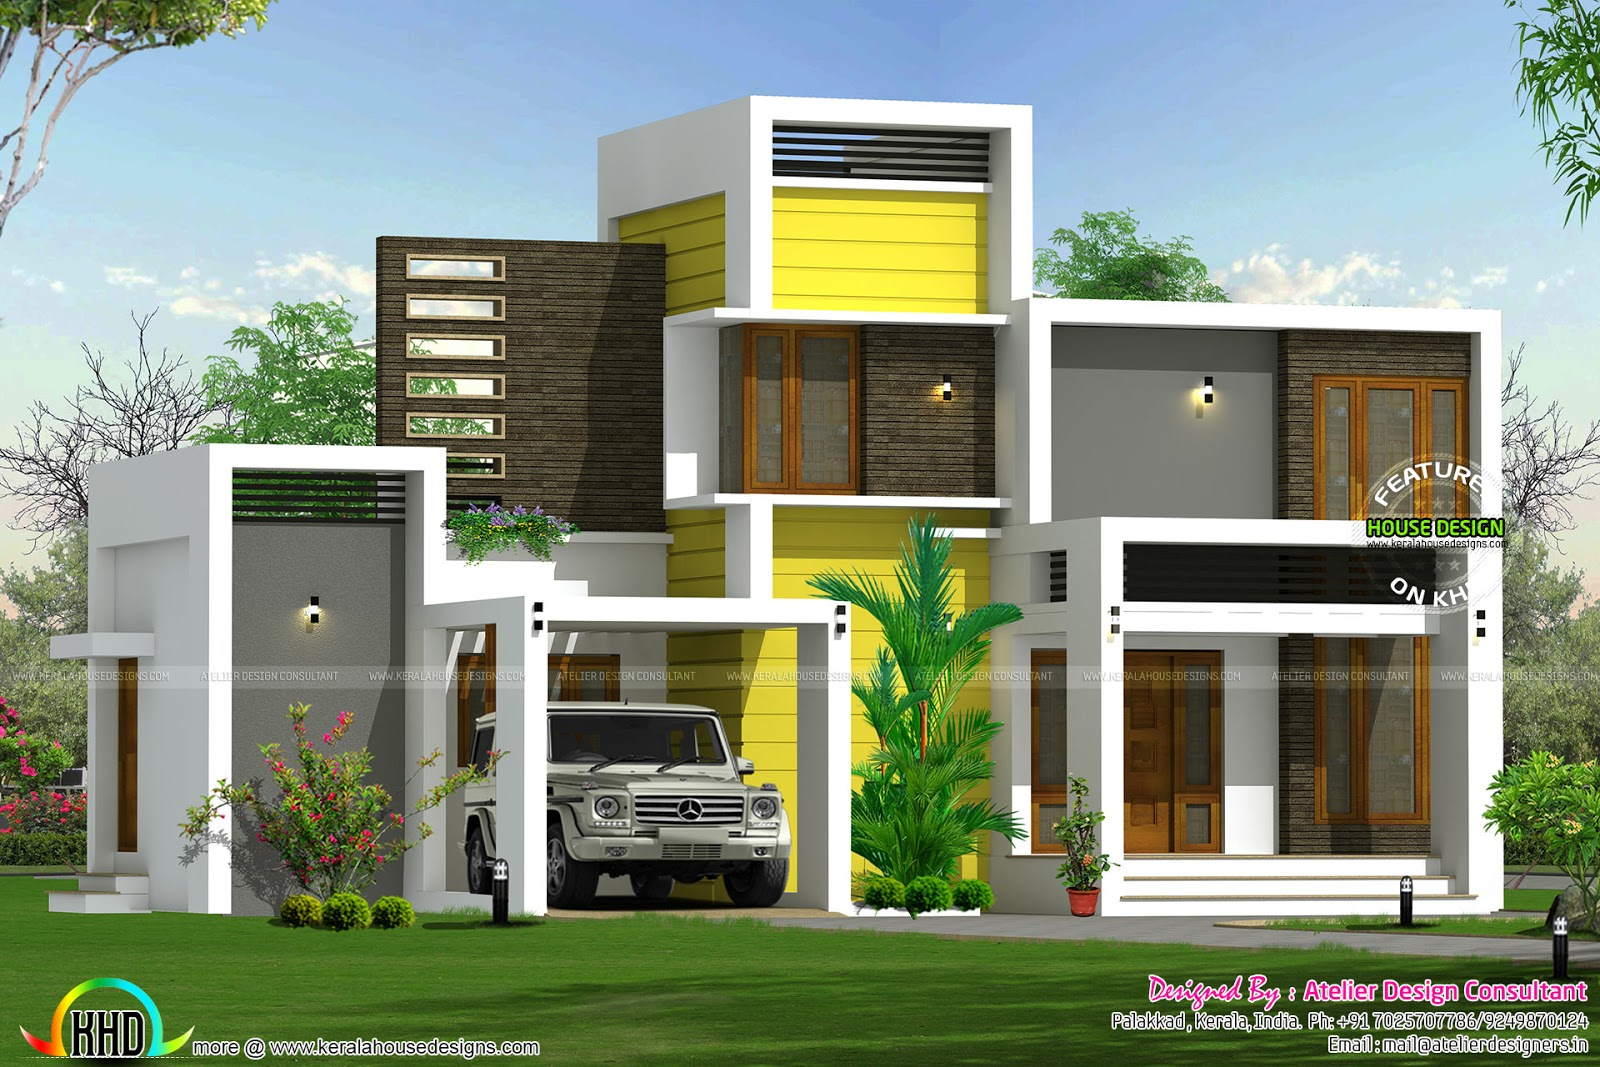 20 Lakh Home In Surat 16 Lakhs House Plan Architecture Kerala Home Design And